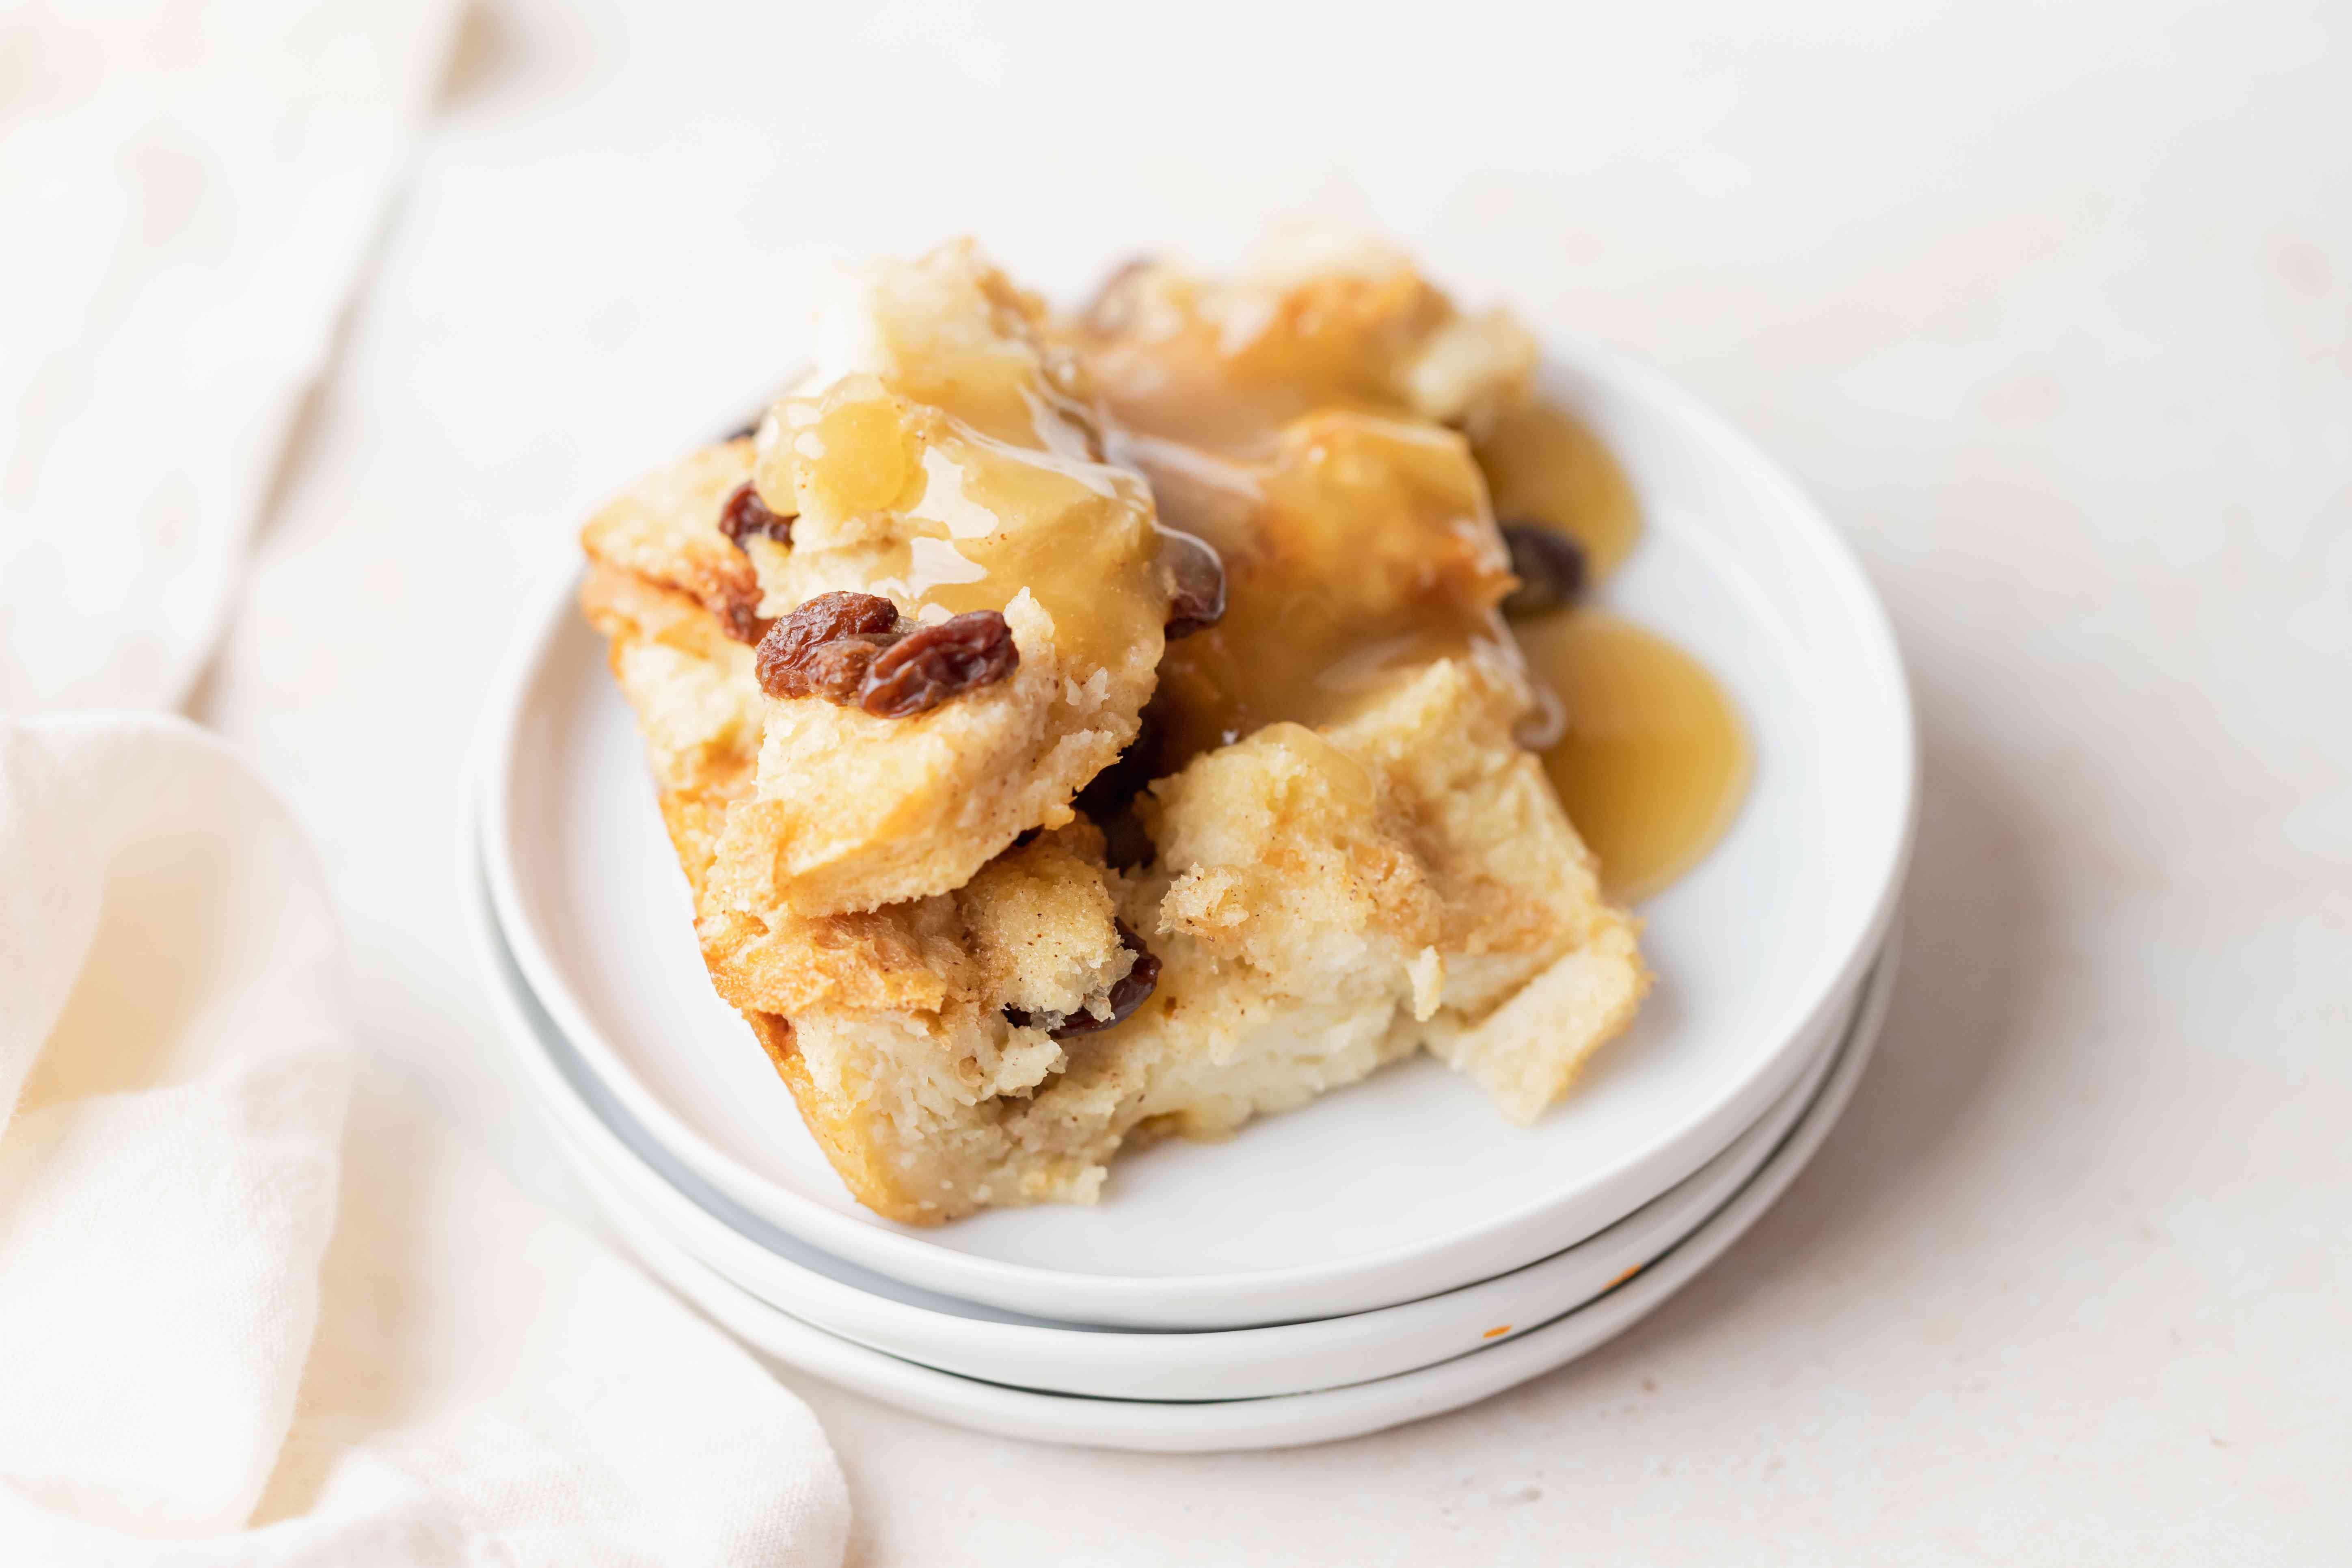 A stack of plates with easy bread pudding set on top.